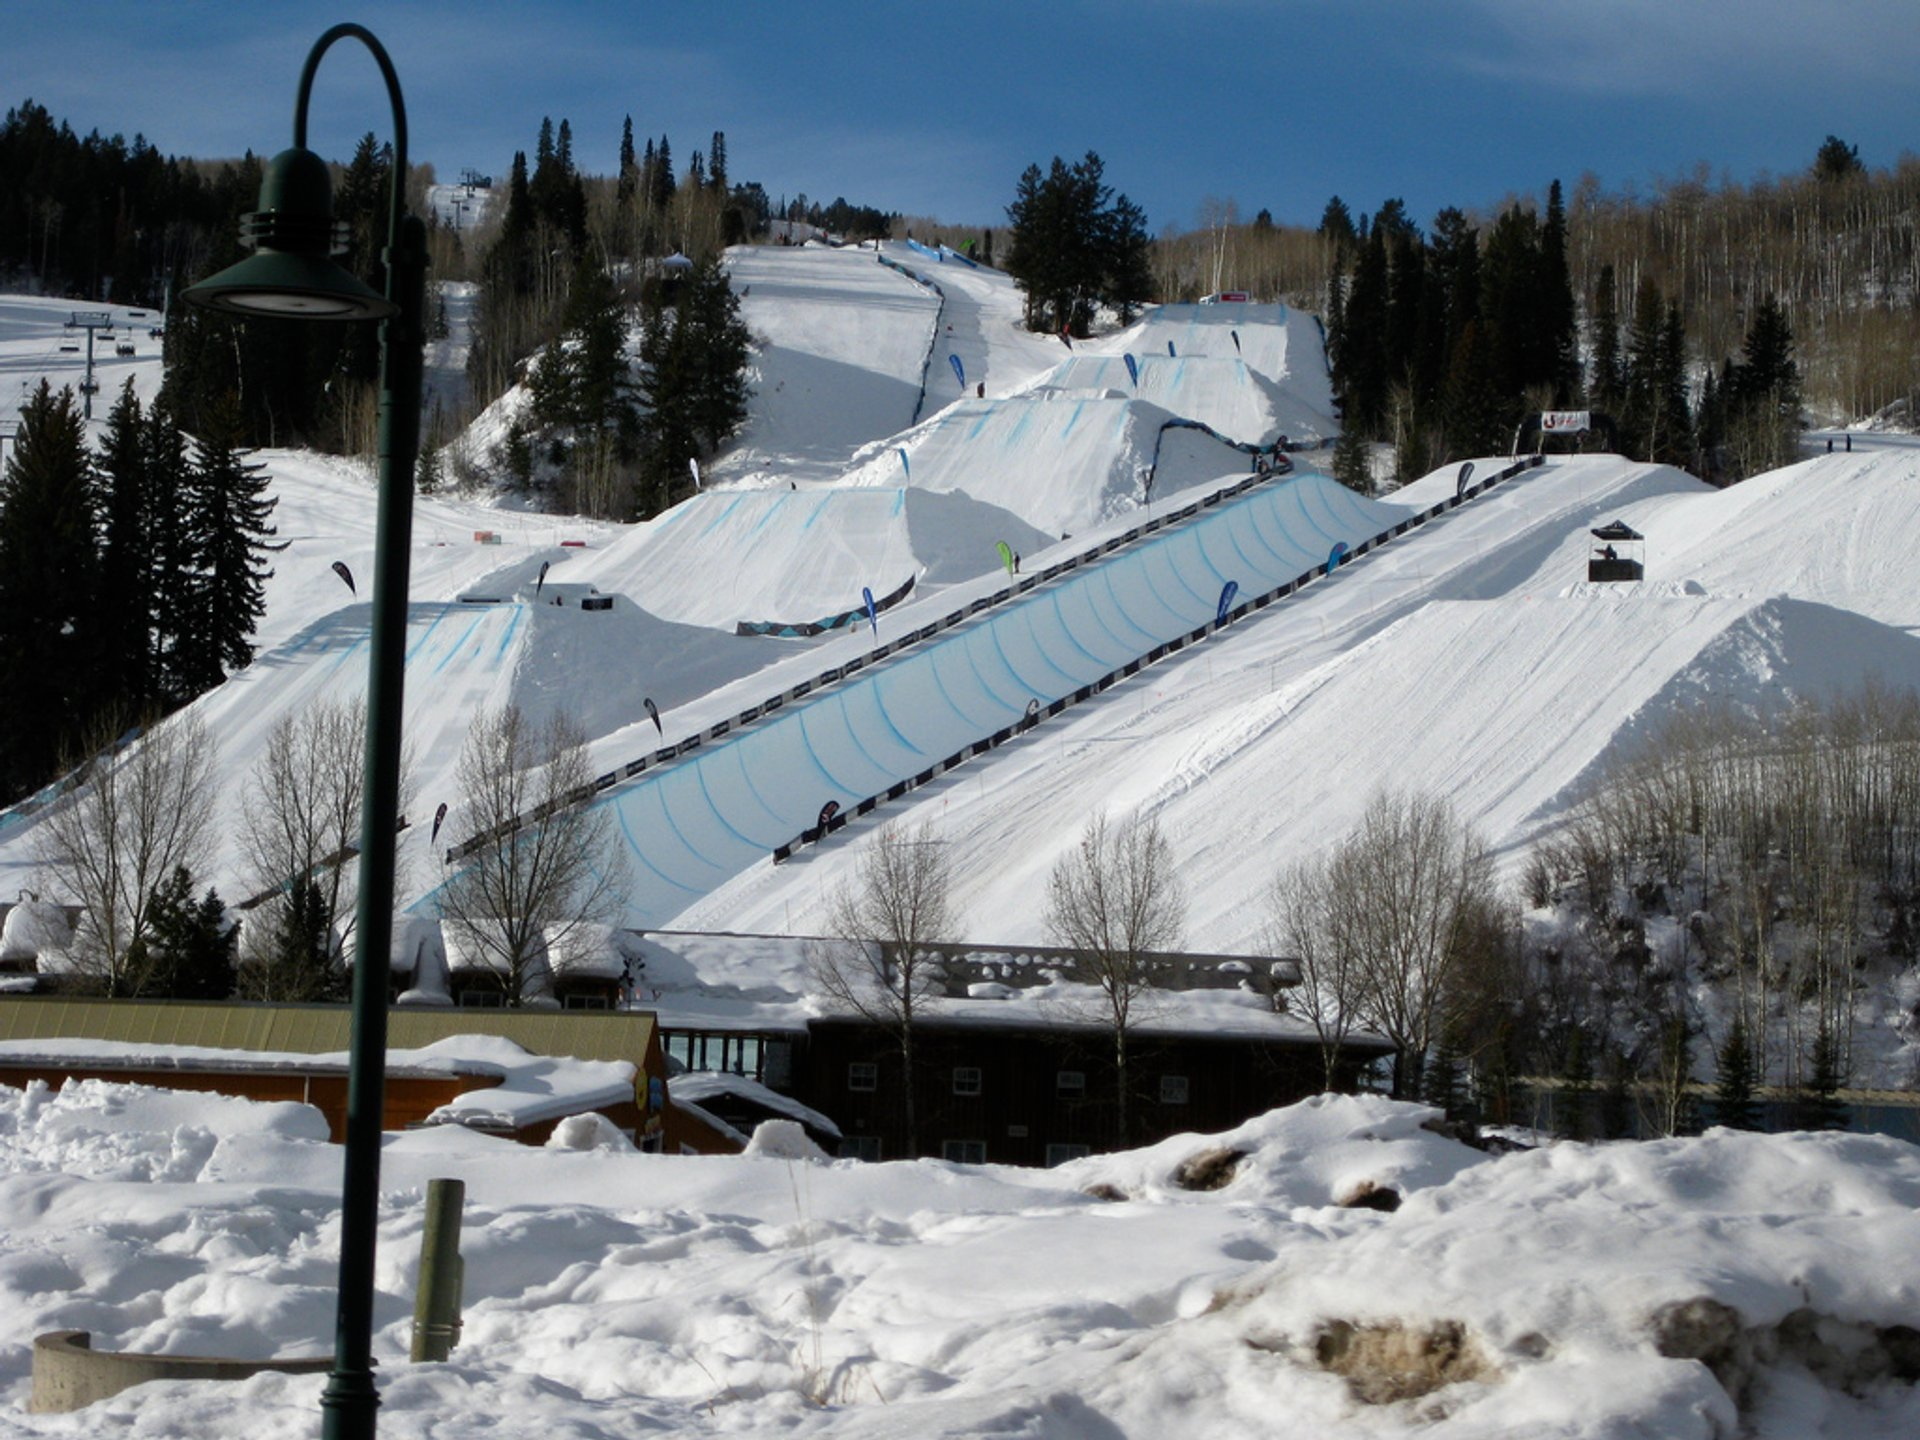 X Games venue at Buttermilk 2020